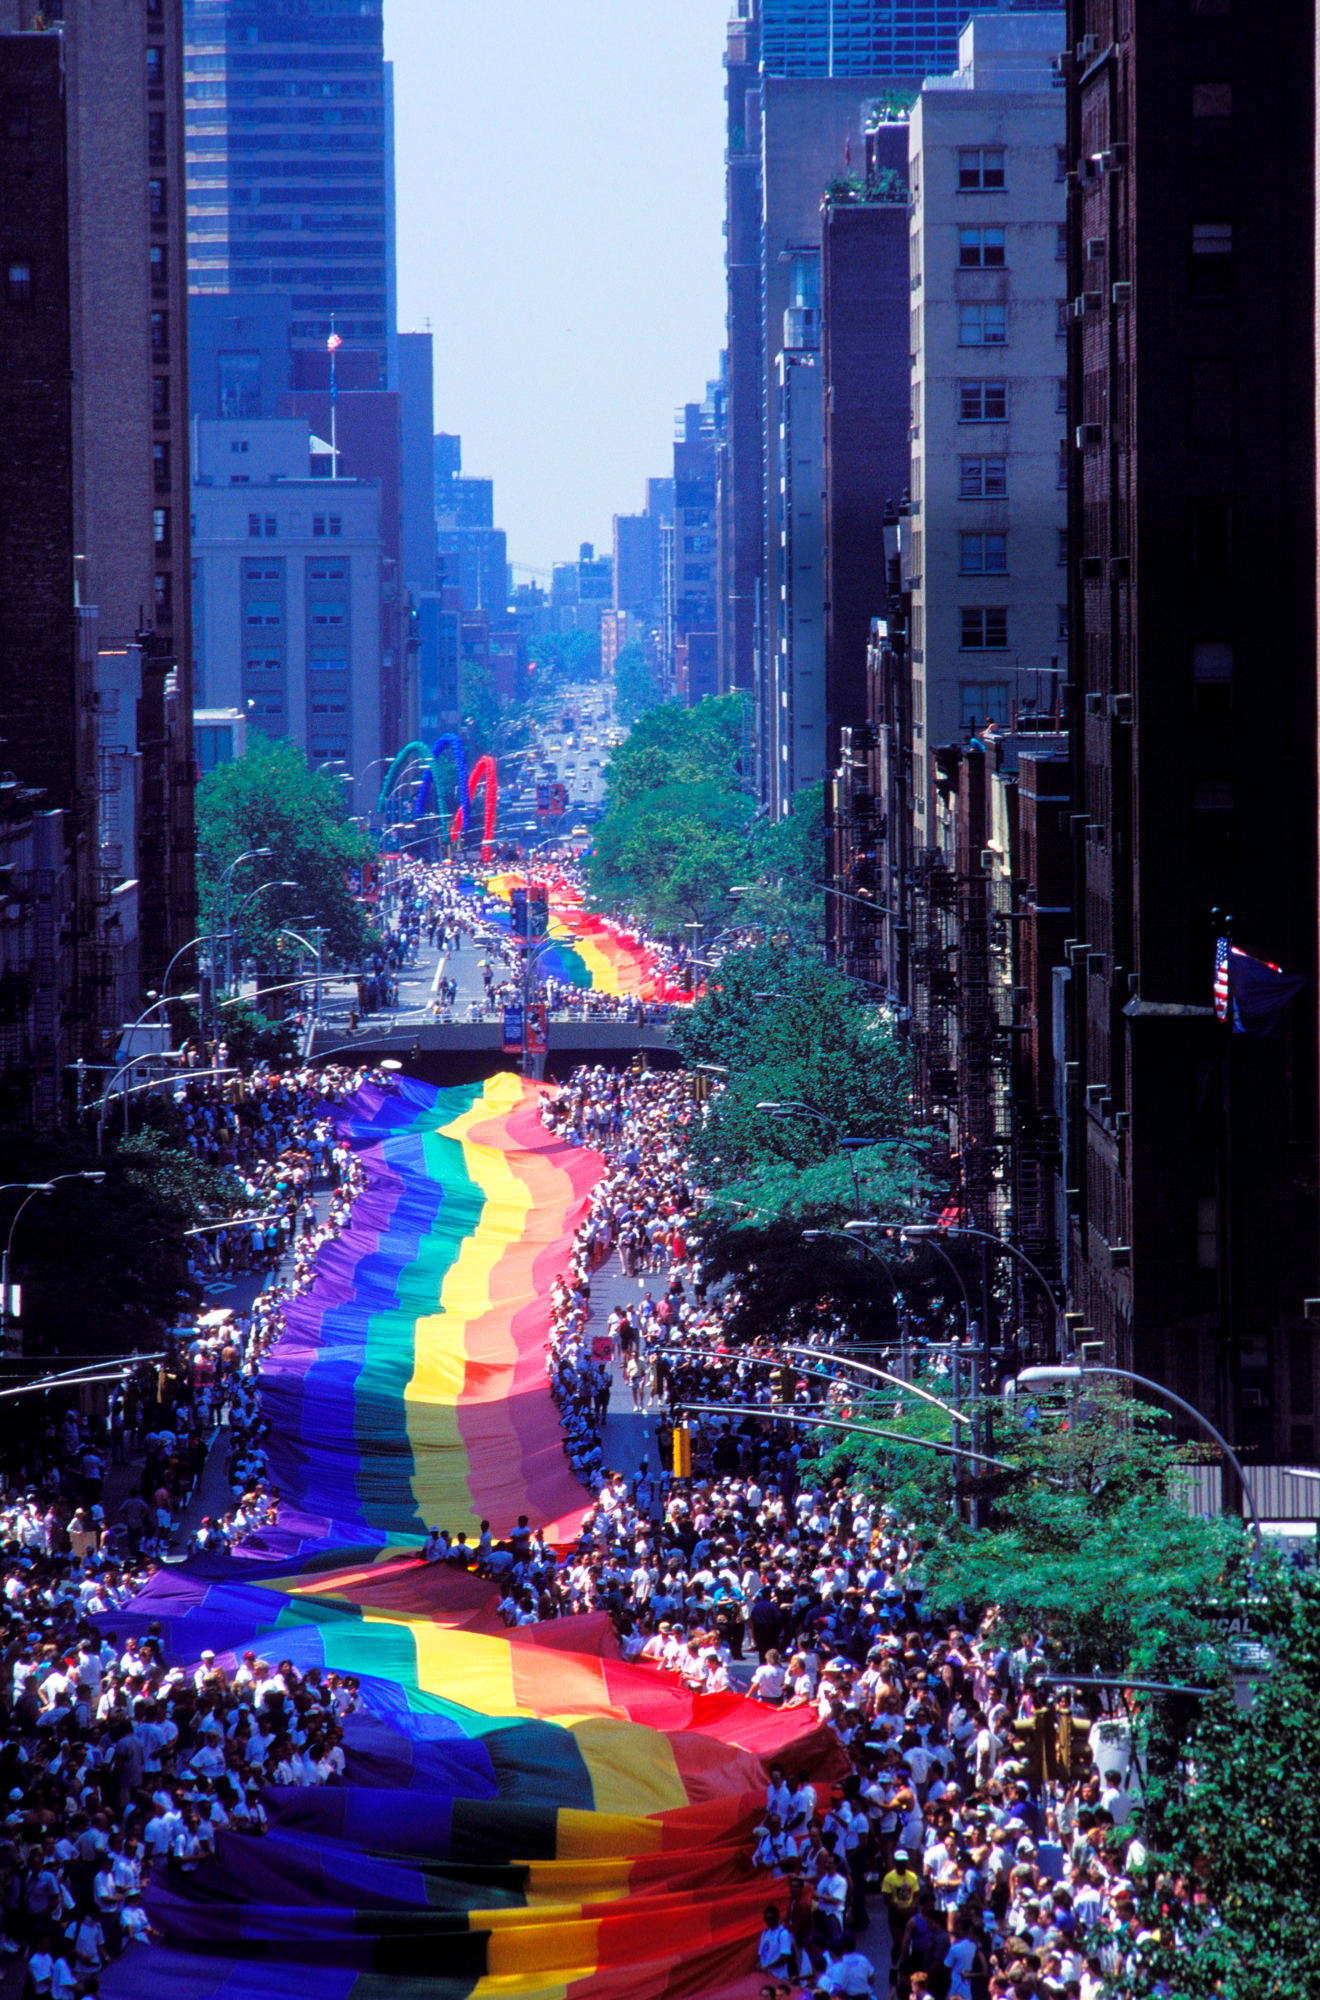 The 25th anniversary of revolt homosexual of Stonewall, bar gay at Greenwich city In New York, United States On June 26, 1994-